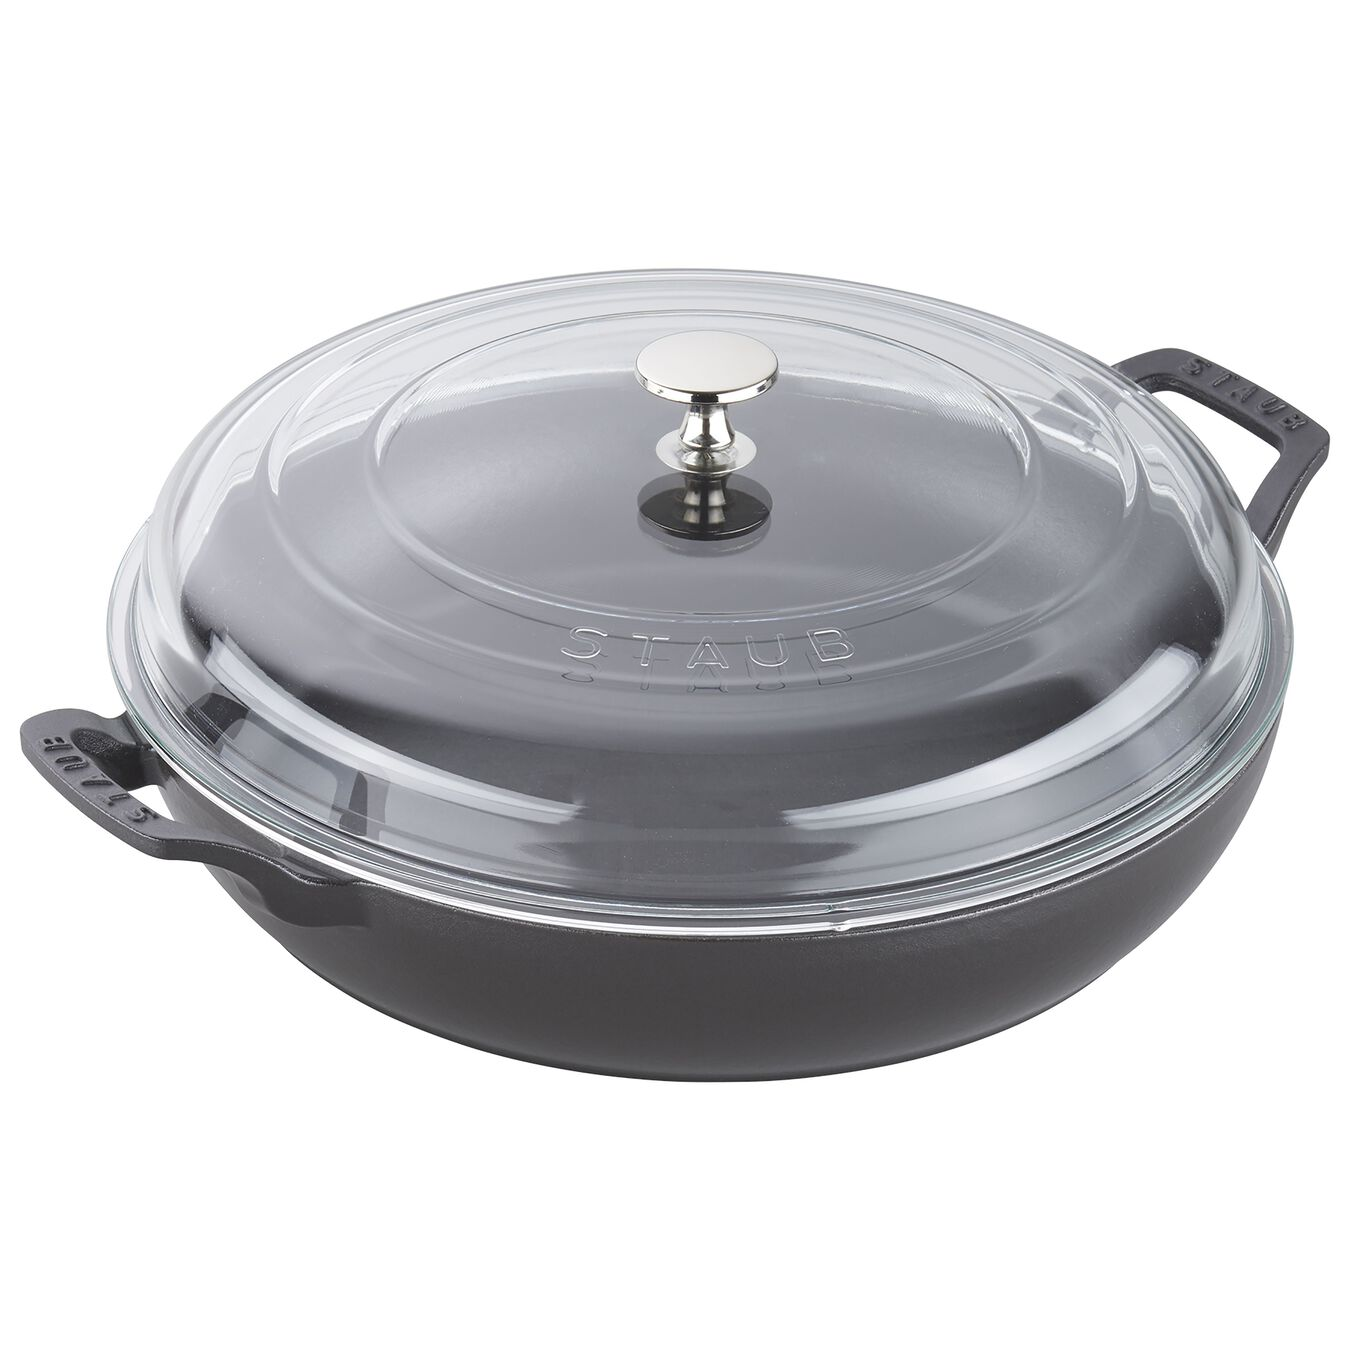 3.5-qt Enamel Braiser with Glass Lid,,large 1